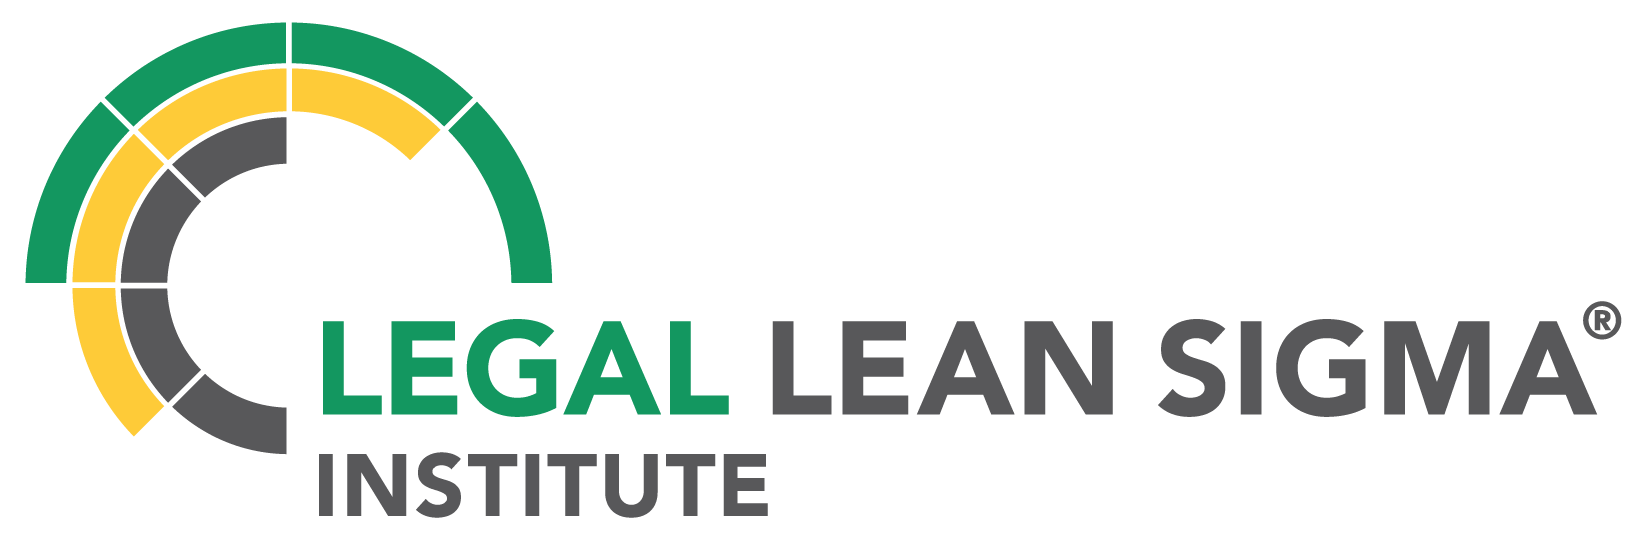 Legal Lean Sigma Institute